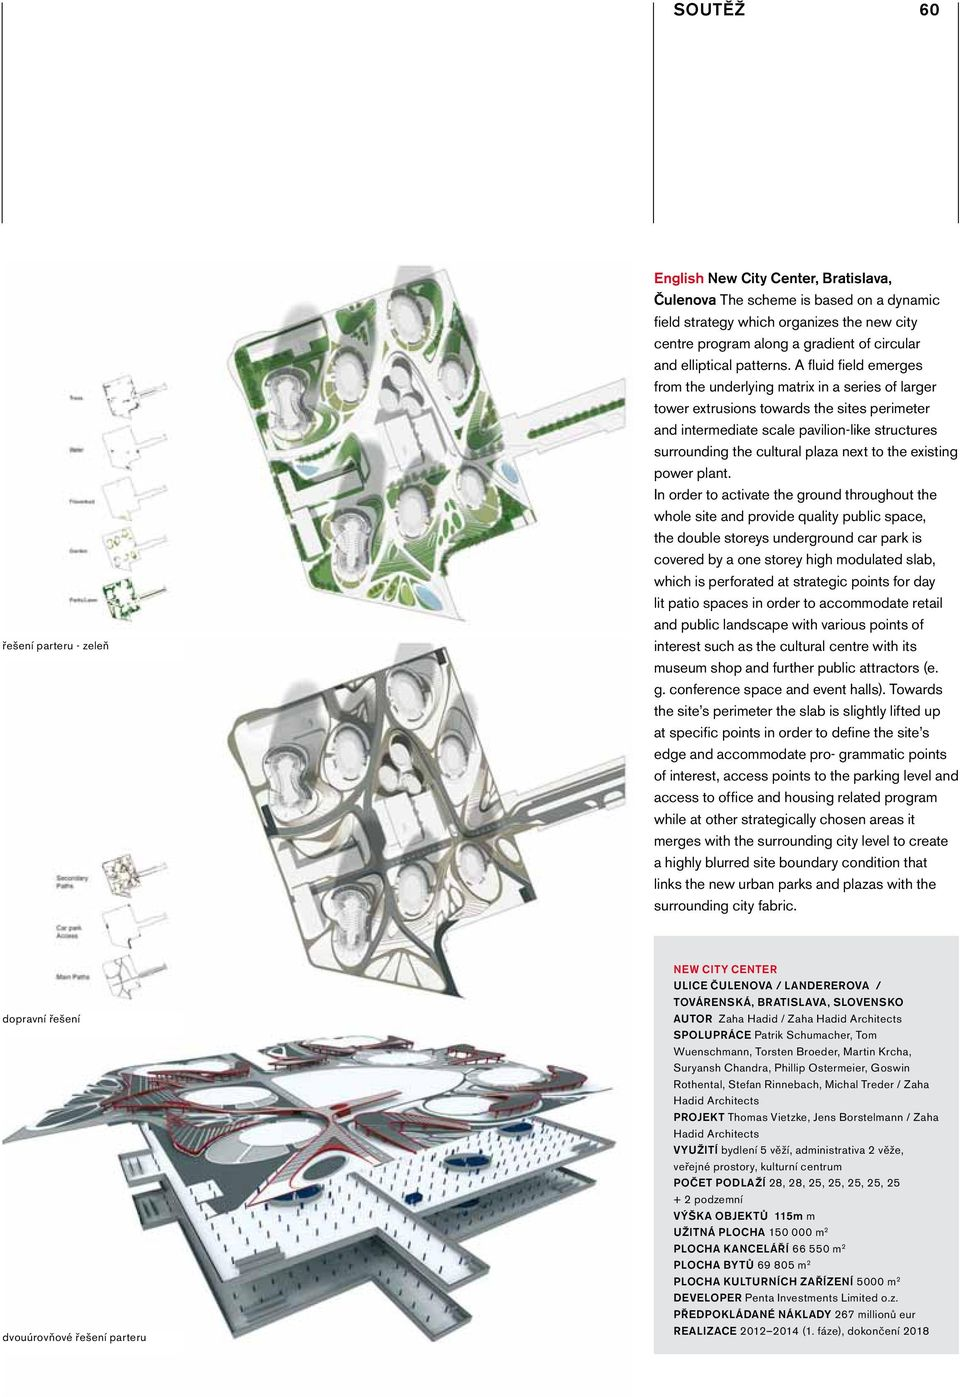 A fluid field emerges from the underlying matrix in a series of larger tower extrusions towards the sites perimeter and intermediate scale pavilion-like structures surrounding the cultural plaza next